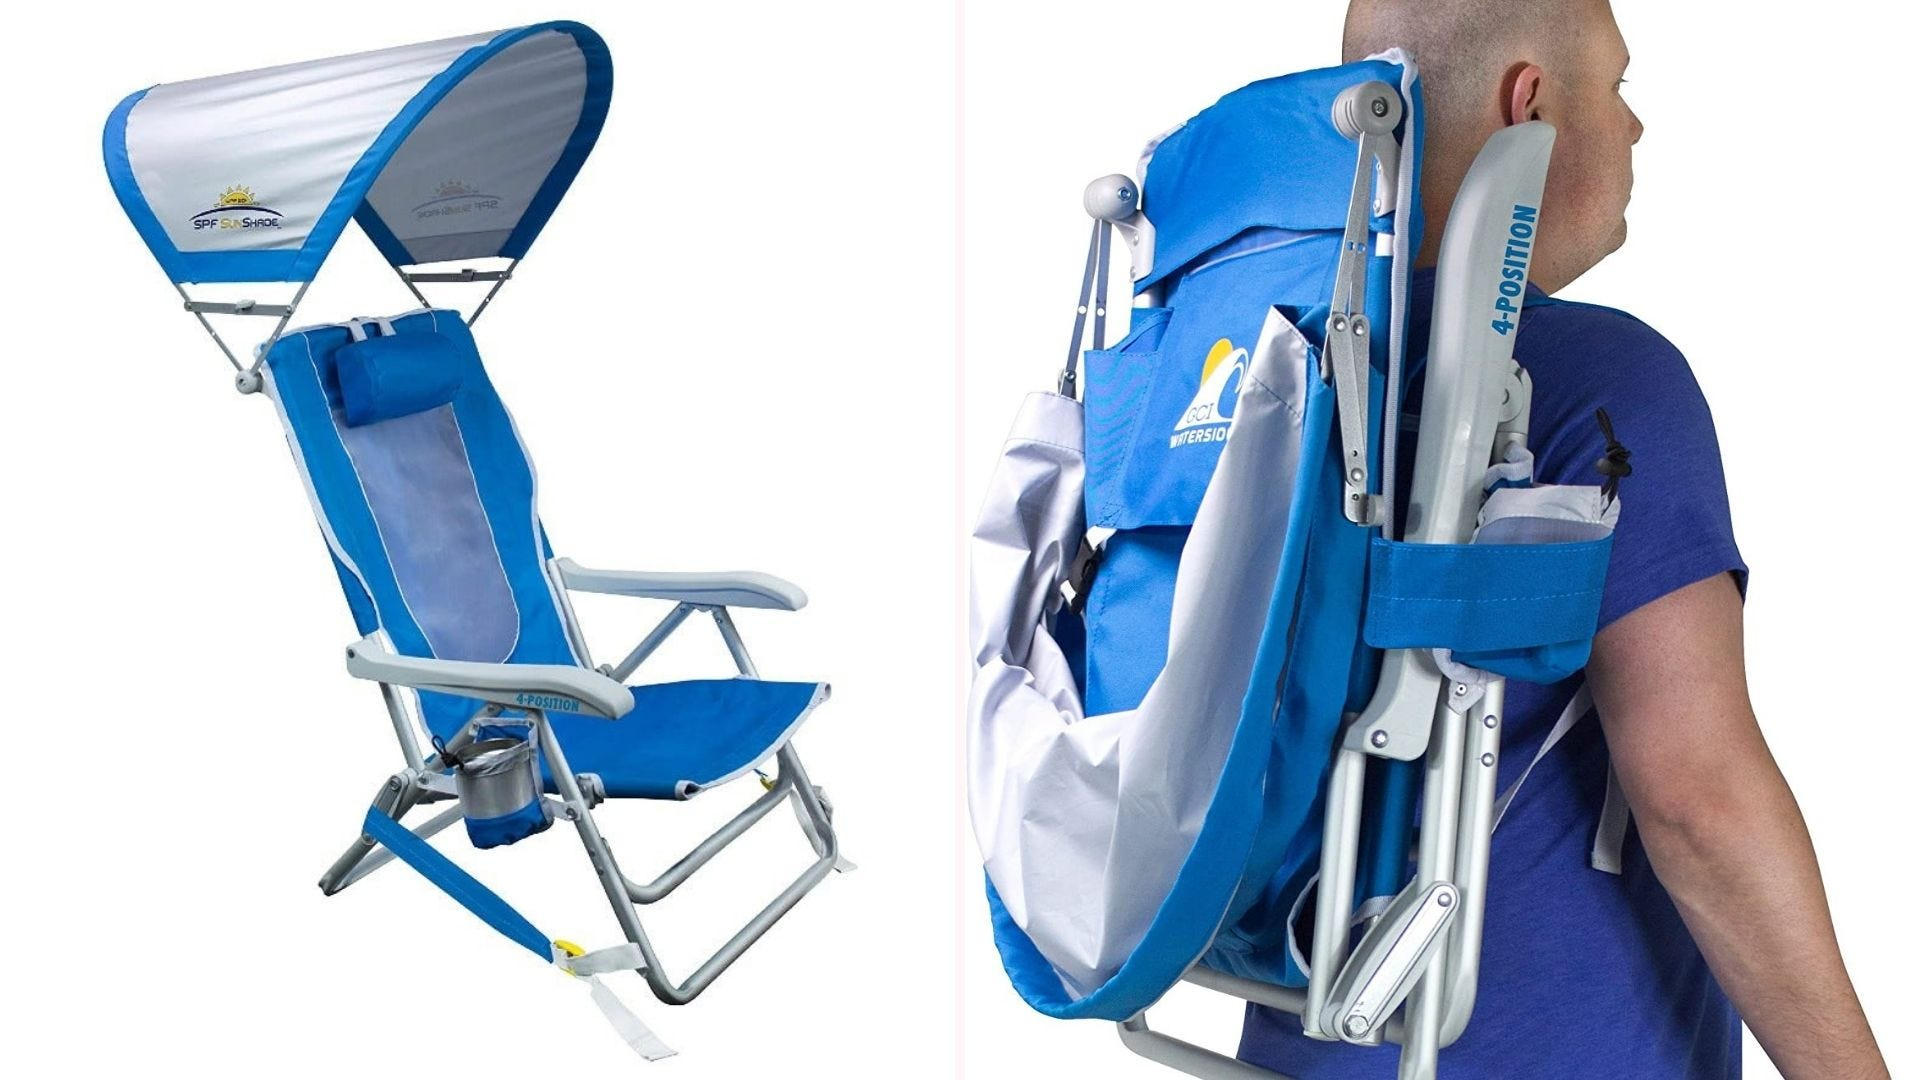 a blue and gray folding chair with a canopy; a man carries it on his back